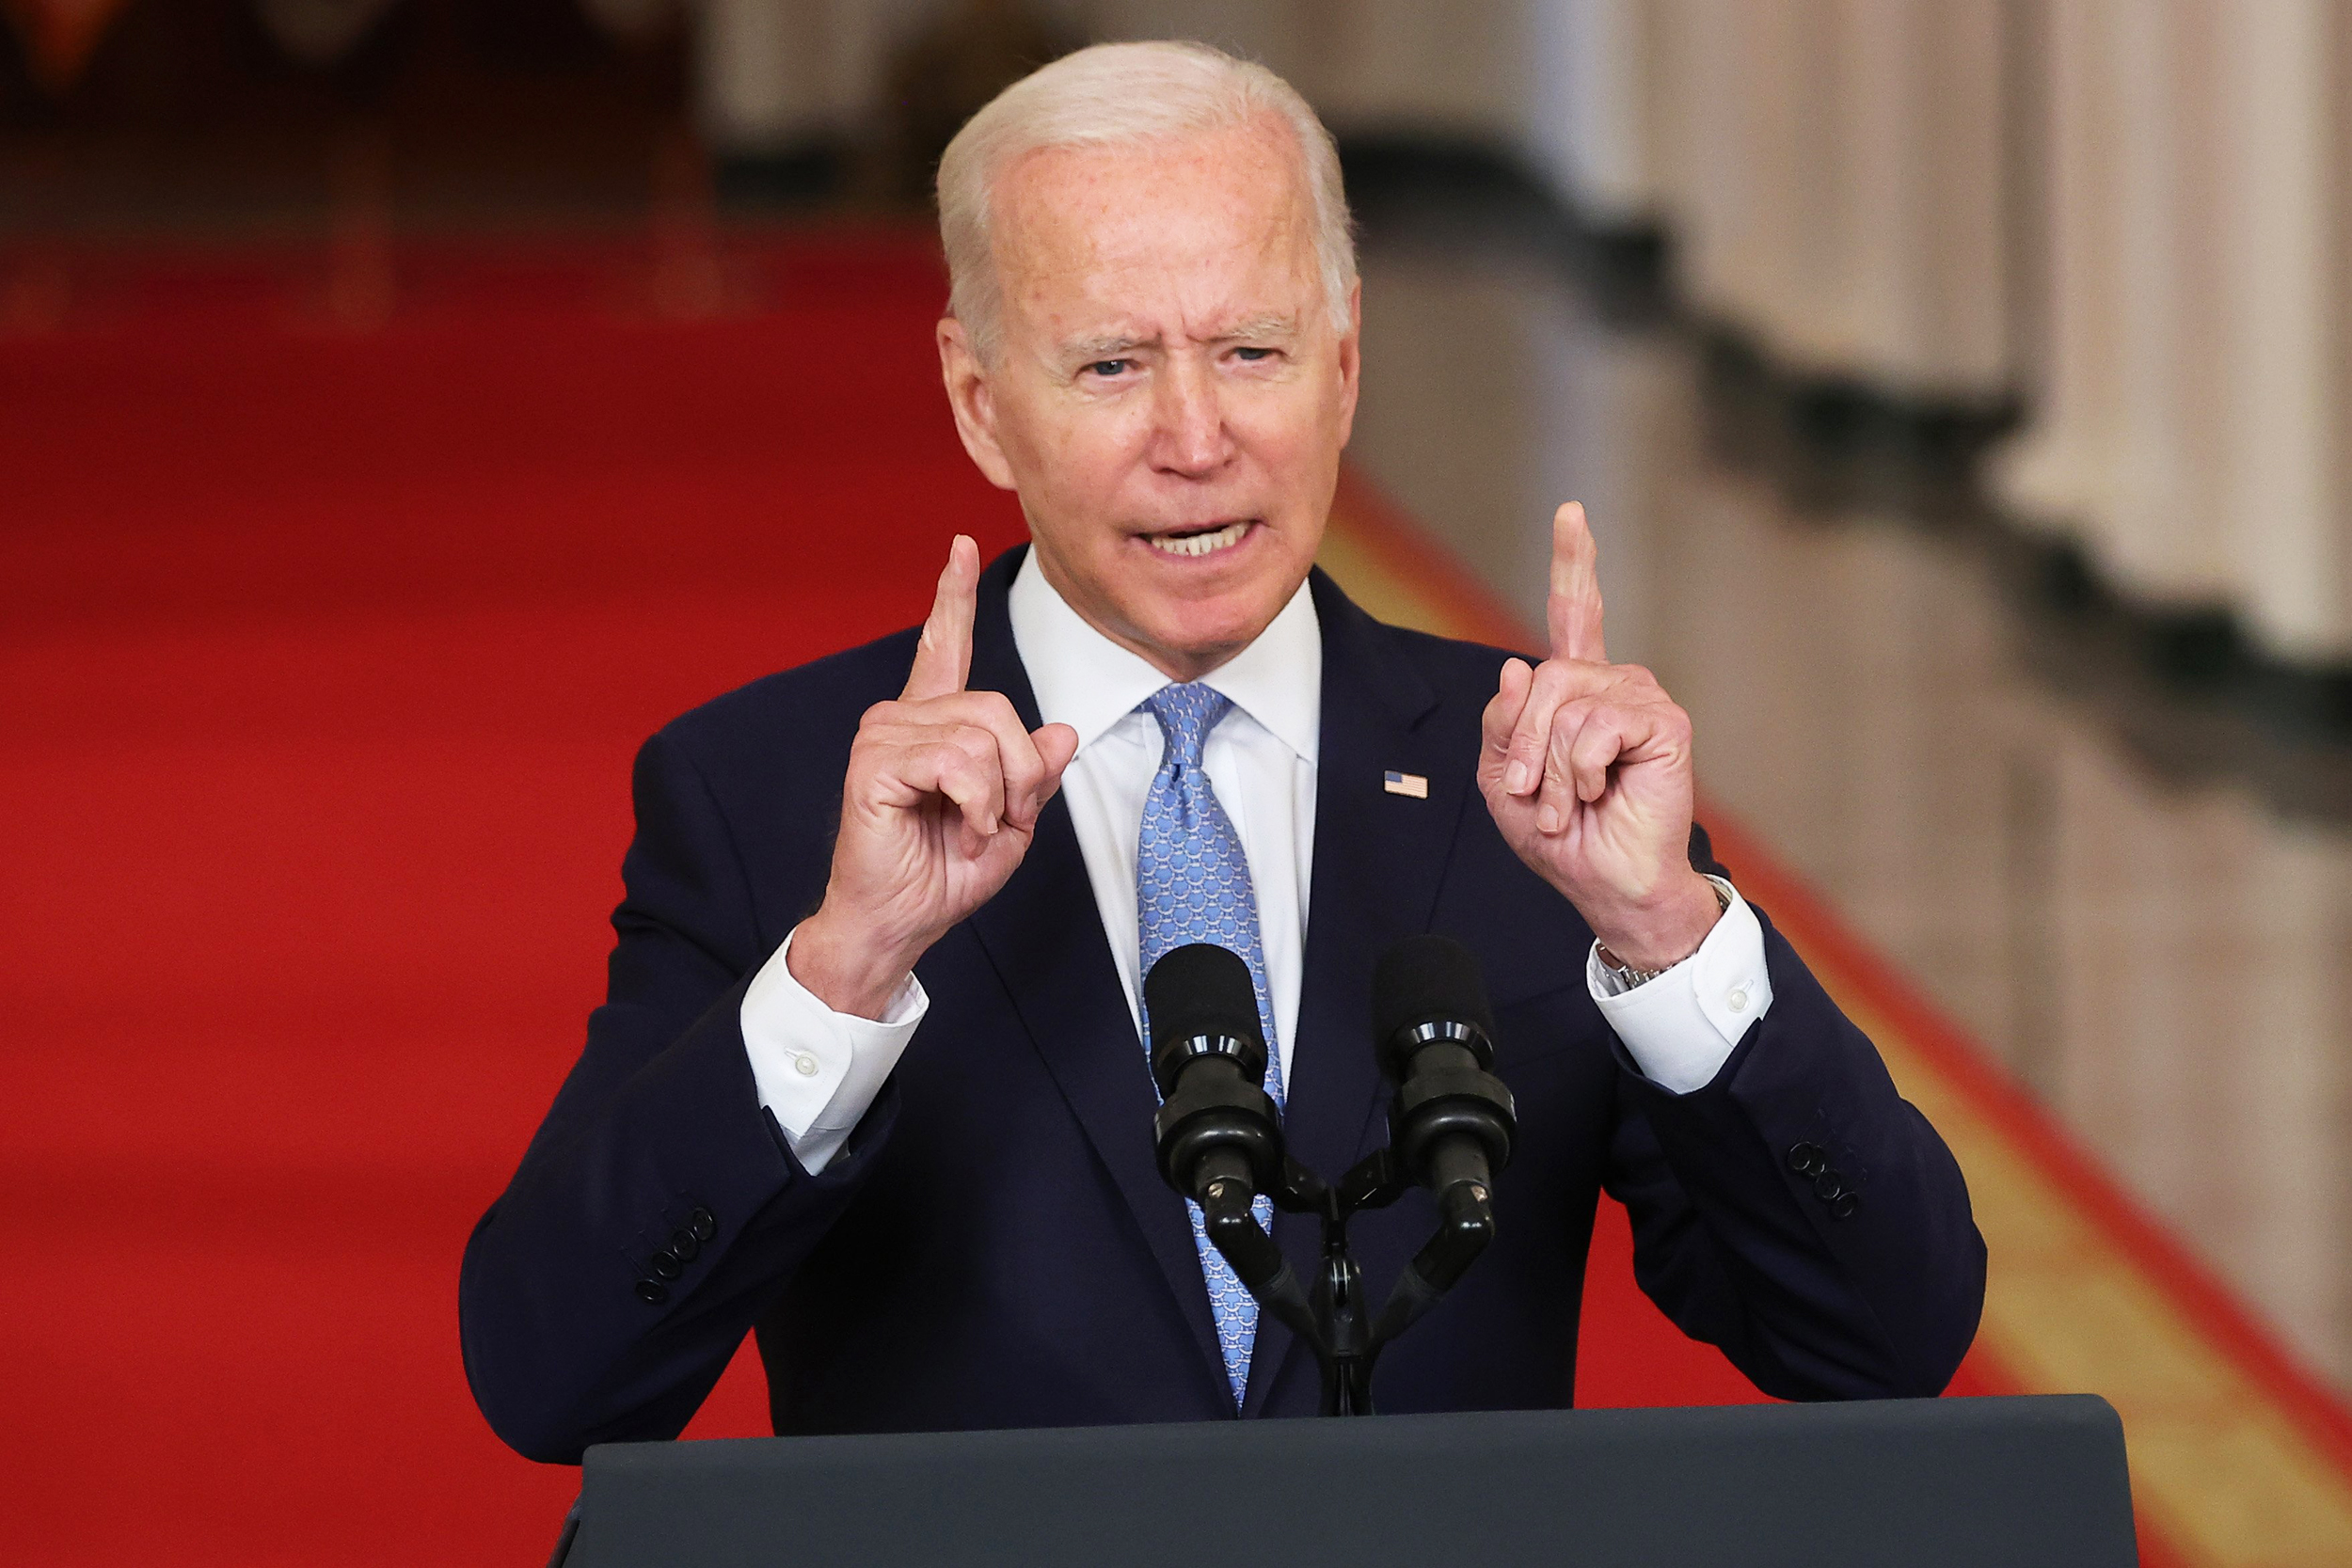 Biden criticizes Texas' draconian new abortion law, vows to defend abortion rights